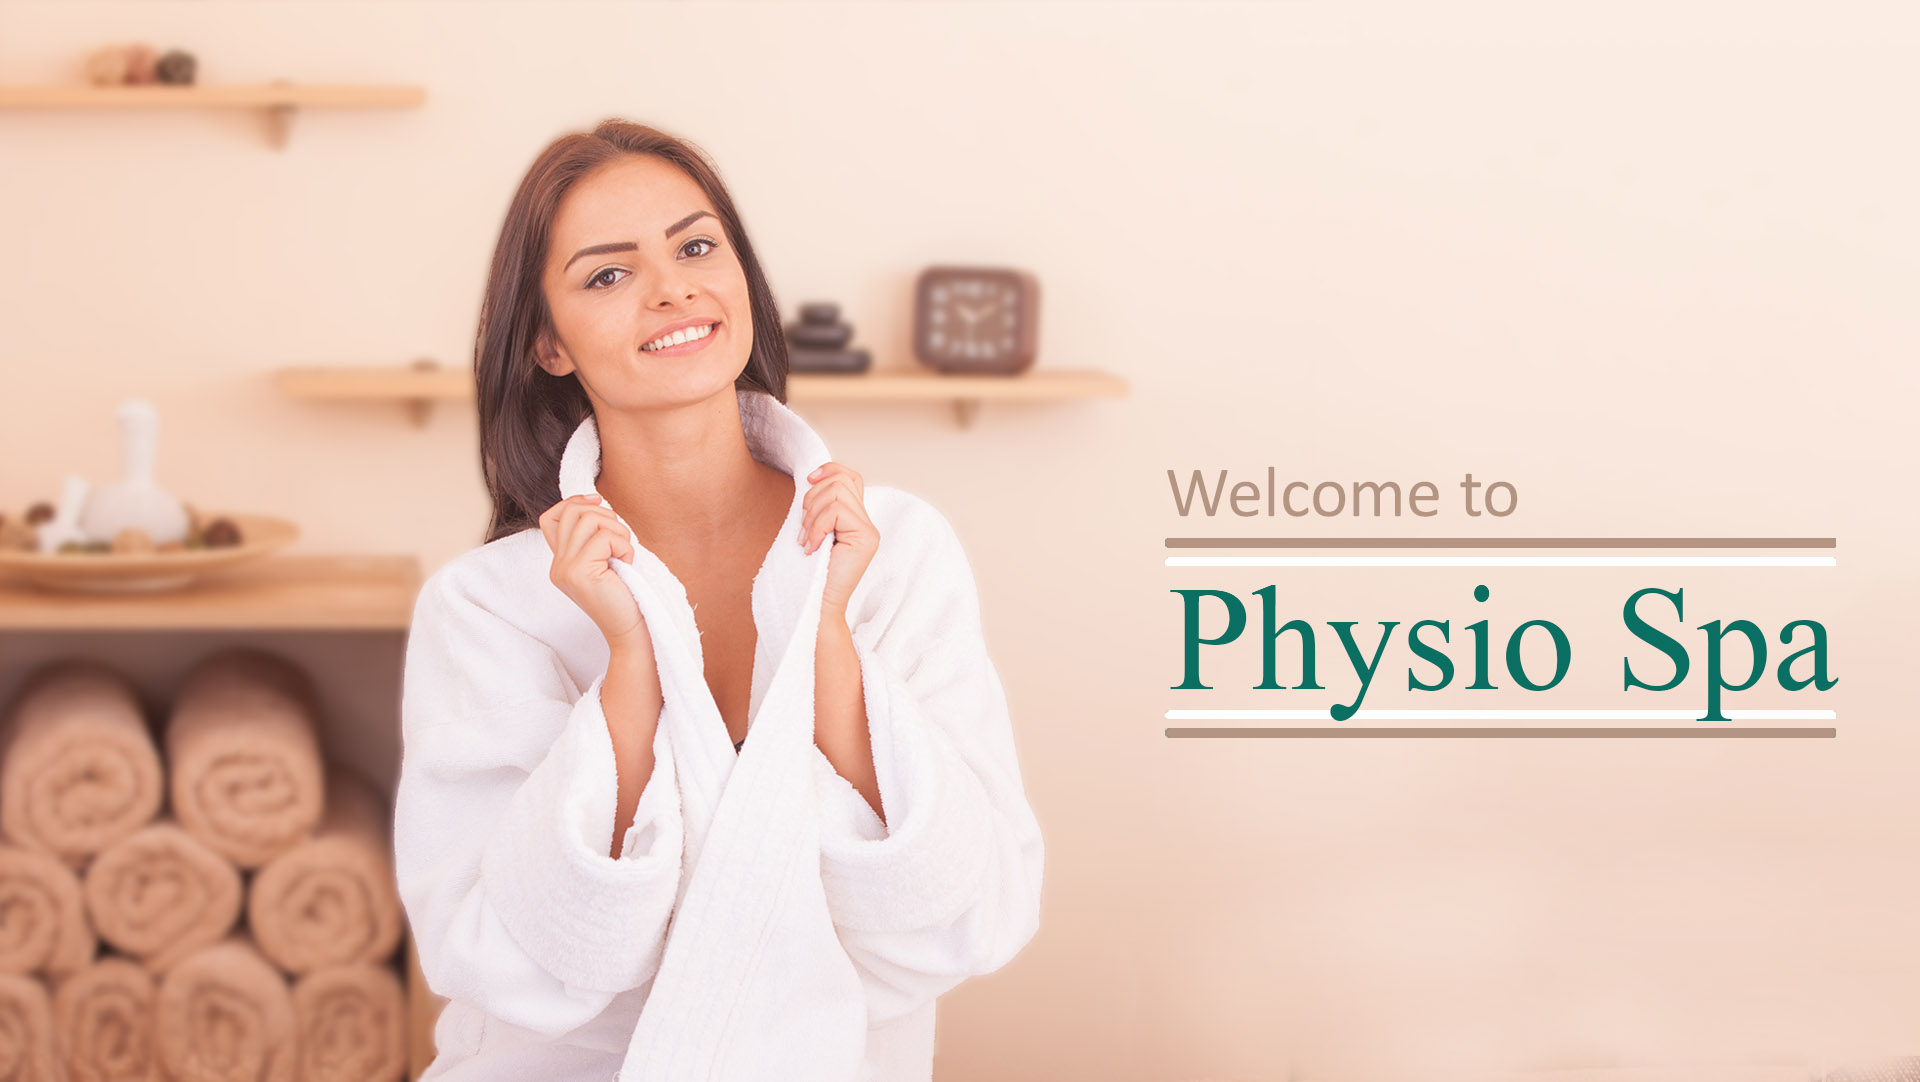 physio spa slider image